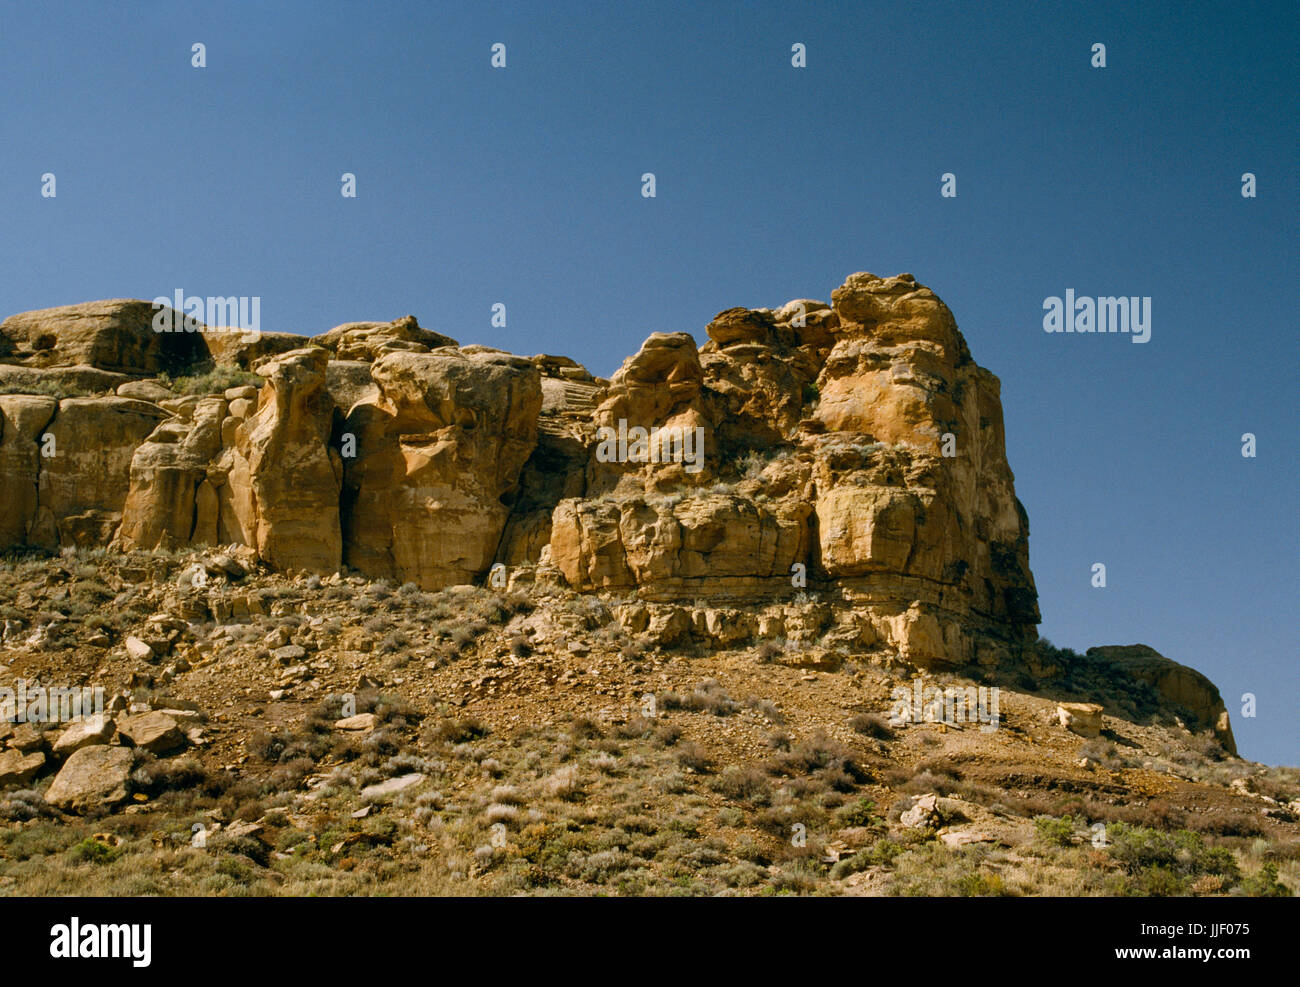 An Anasazi rock-cut staircase on the south cliff of Chaco Canyon, New Mexico, just E of Casa Riconada great kiva - Stock Image